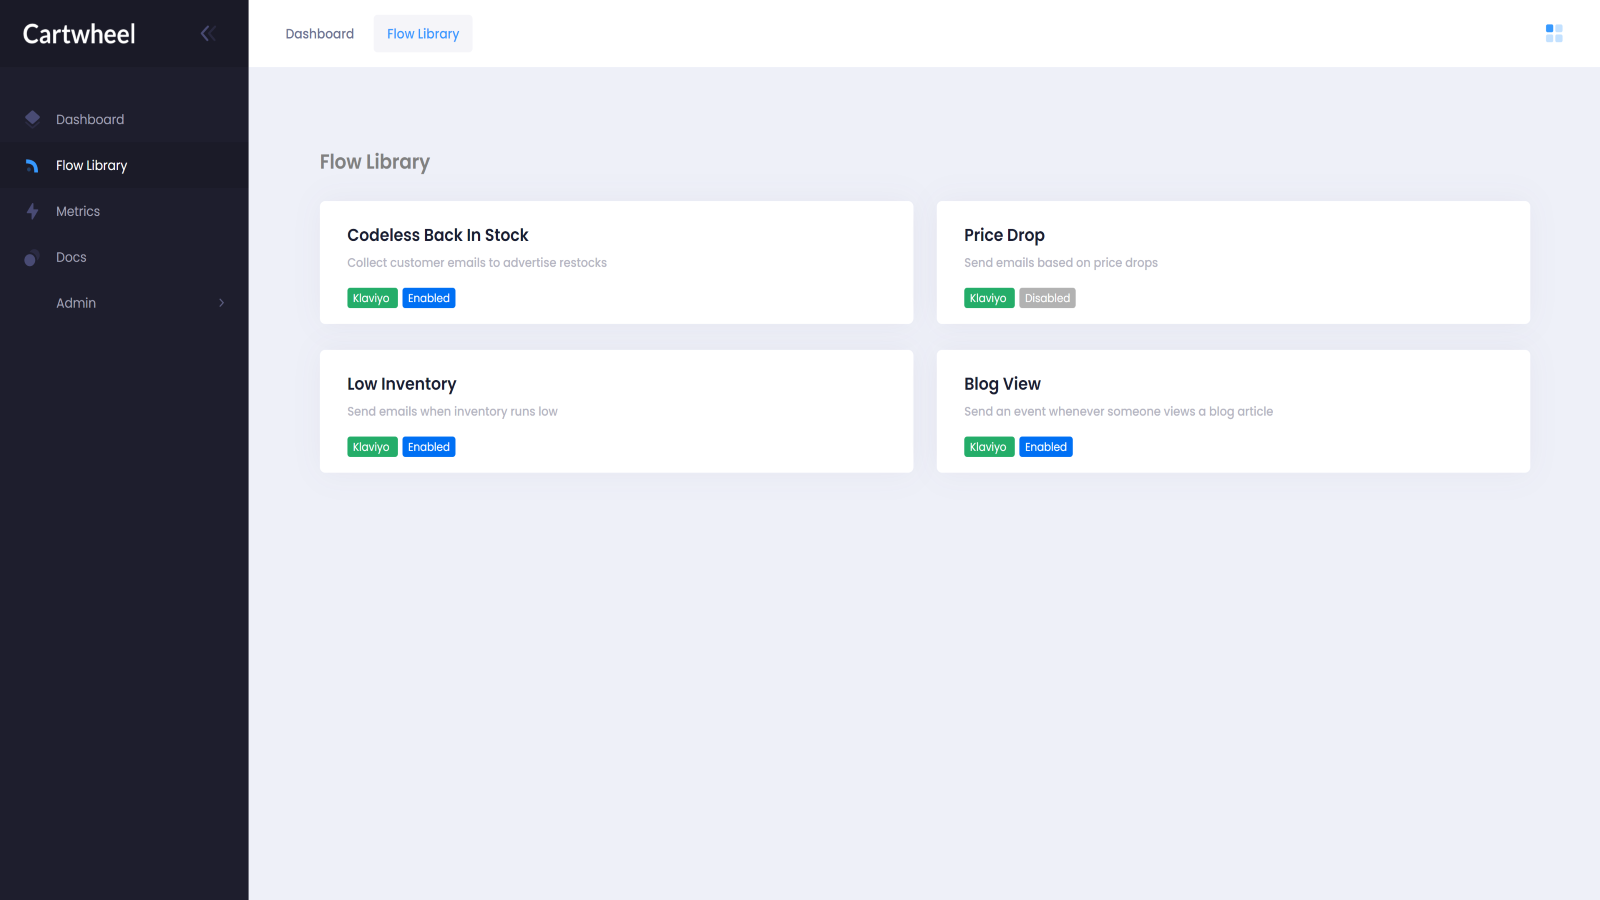 cartwheel-flow-library-blog-view-back-in-stock-low-inventory